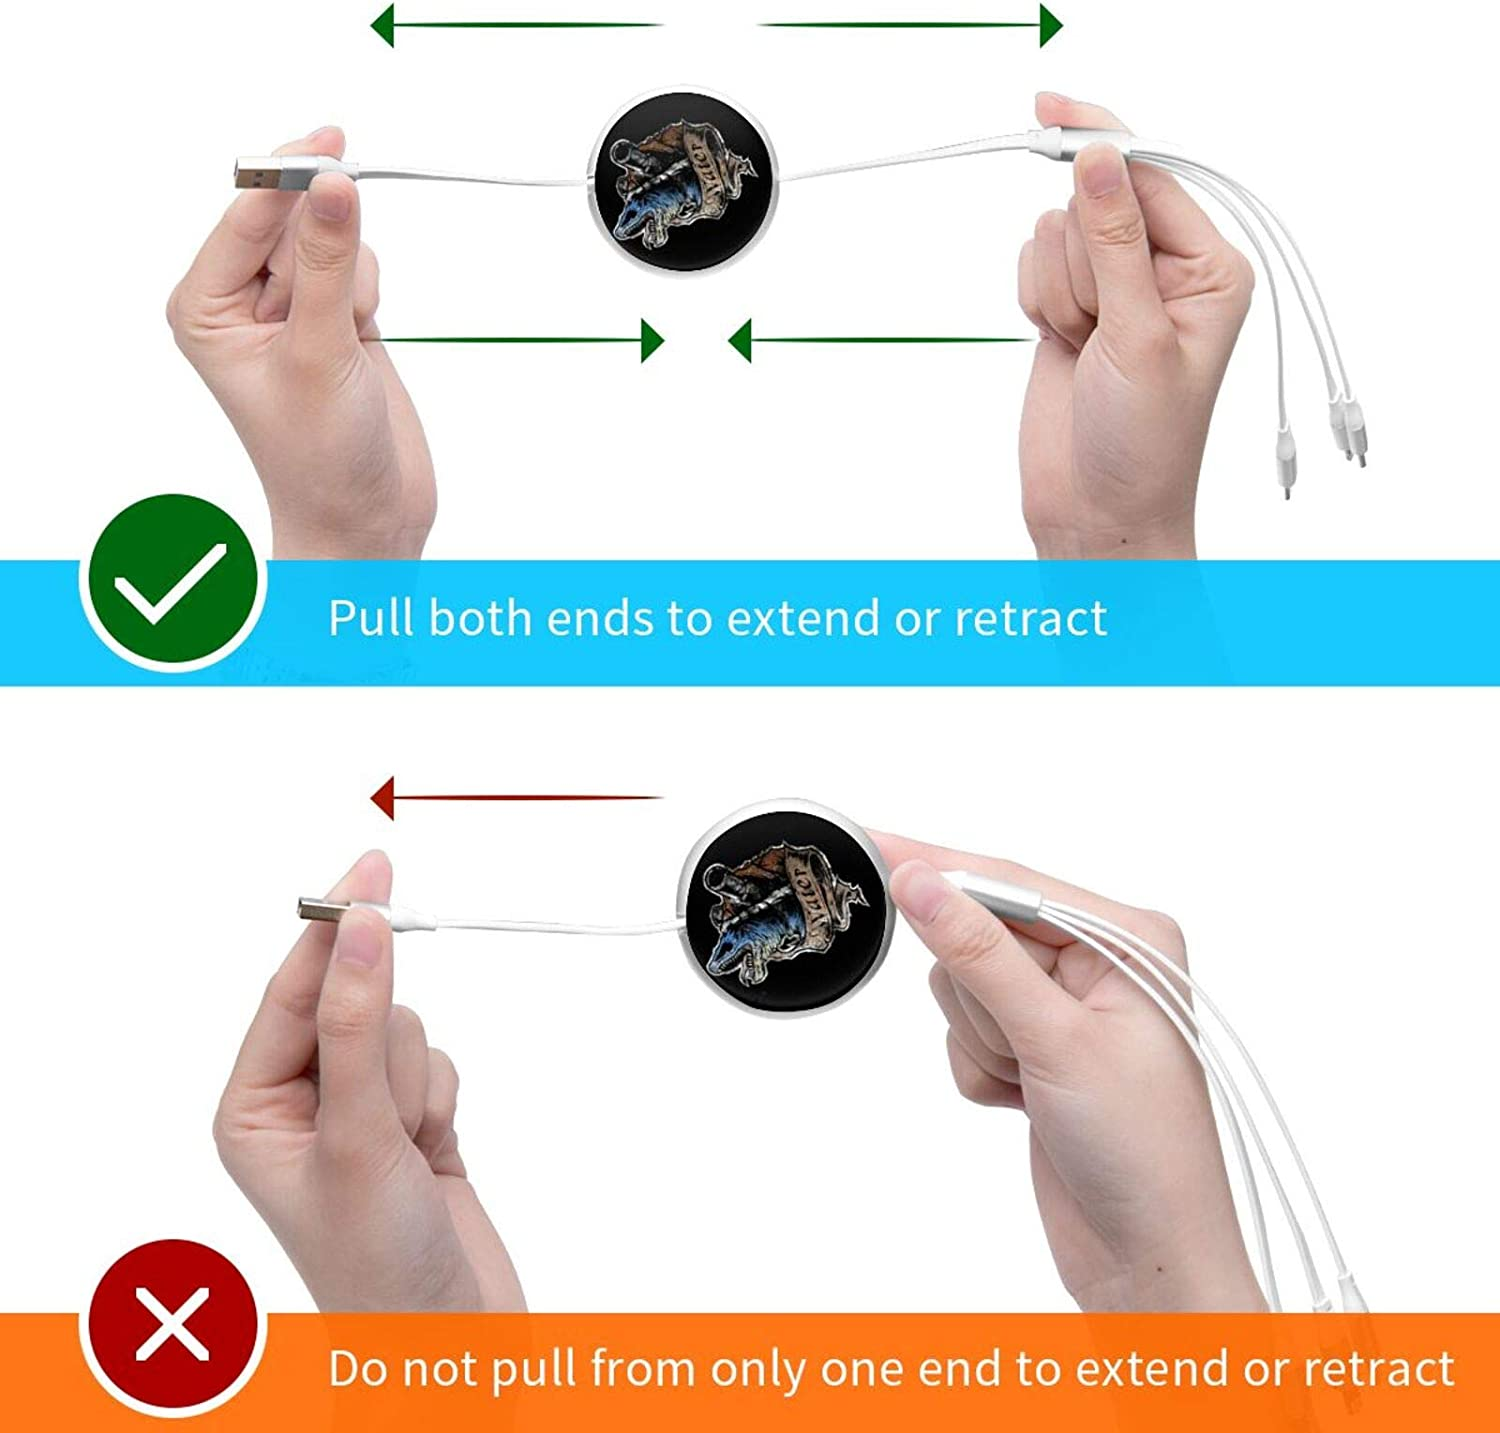 Anime Hunter X Hunter Gon 3 in 1 Retractable Multi Charging Cable 3.0a Fast Charger Cord with Phone//Type C//Micro USB Charge Port Adapter Compatible with Cell Phones Tablets and More